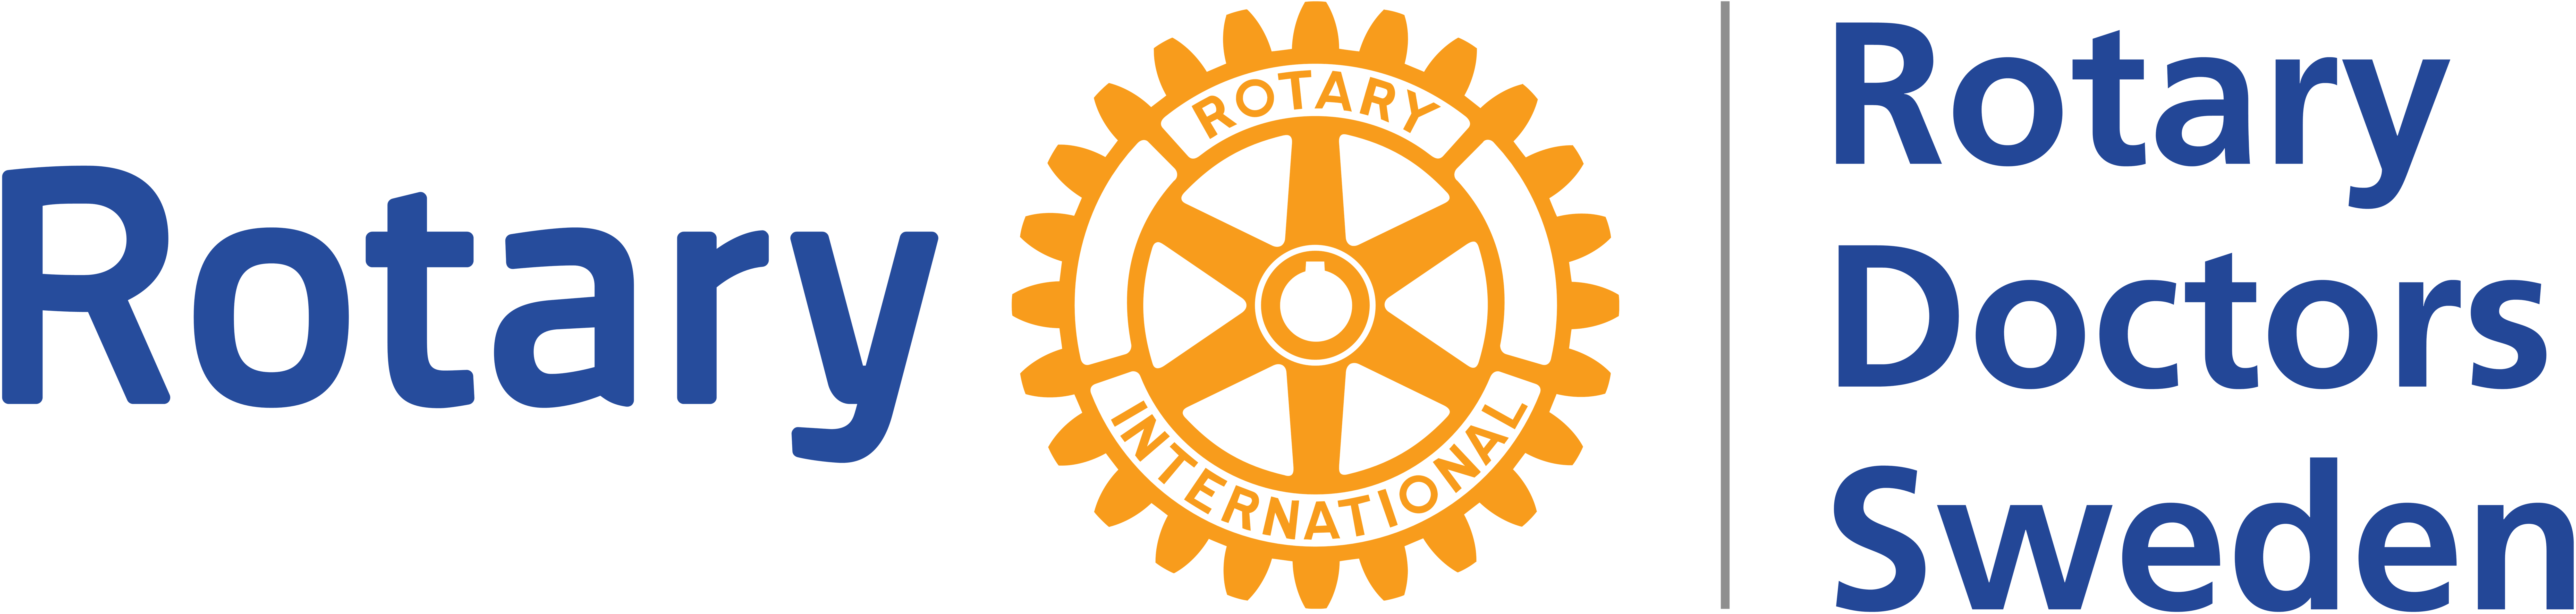 Rotary Doctors Sweden